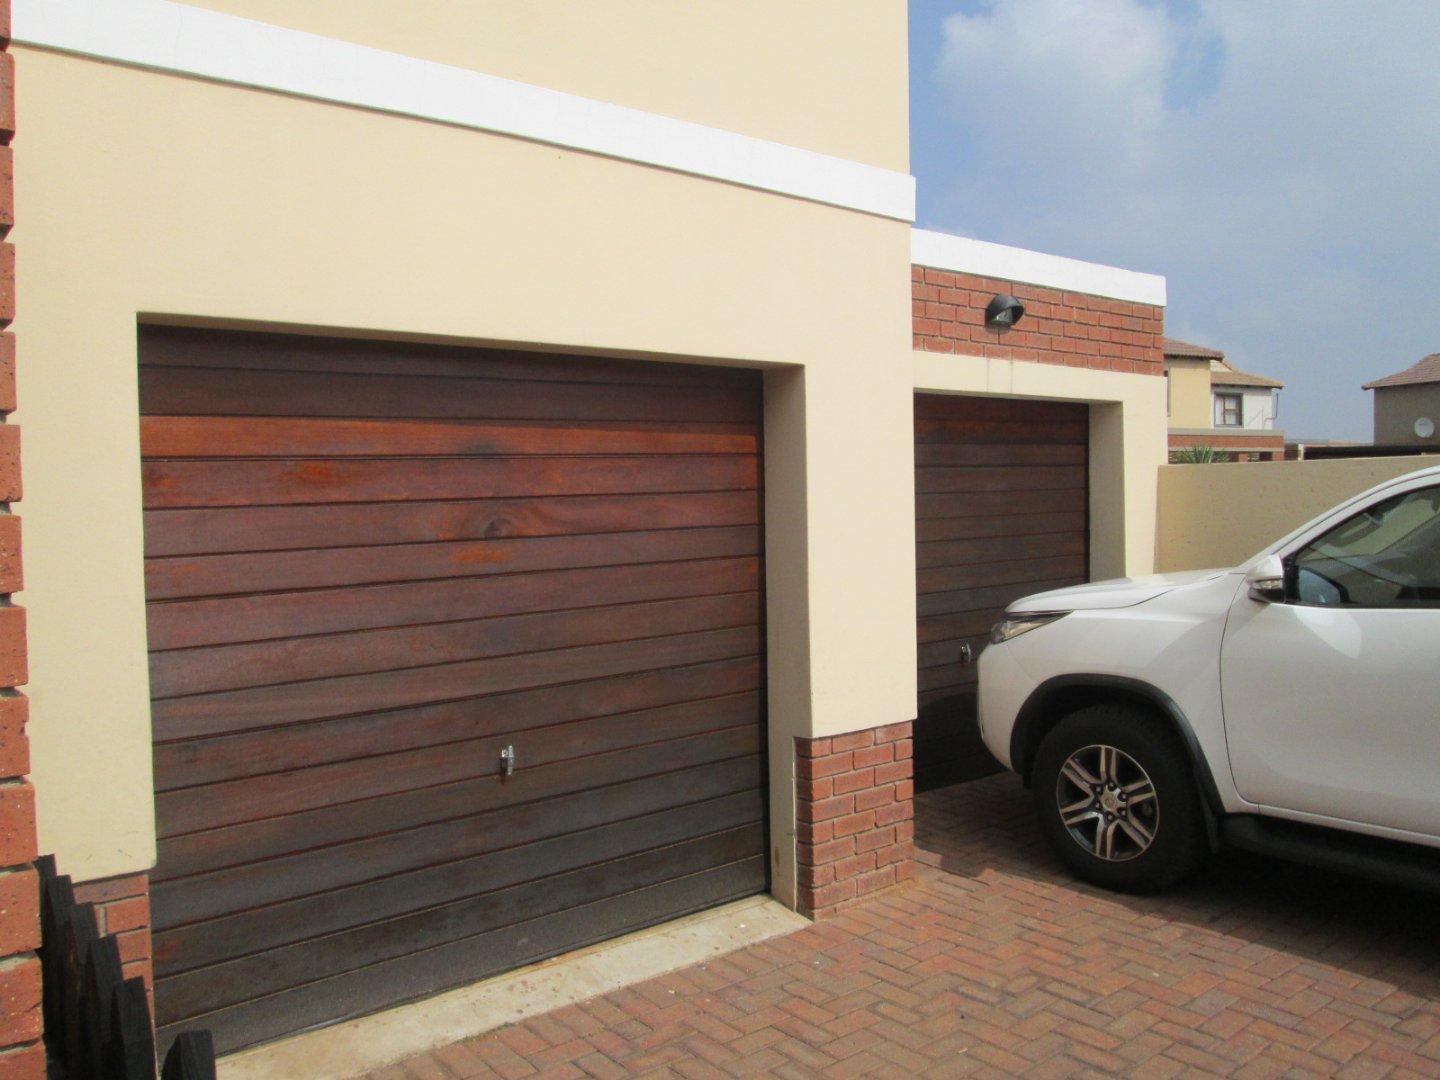 Meyersig Lifestyle Estate property for sale. Ref No: 13622462. Picture no 22